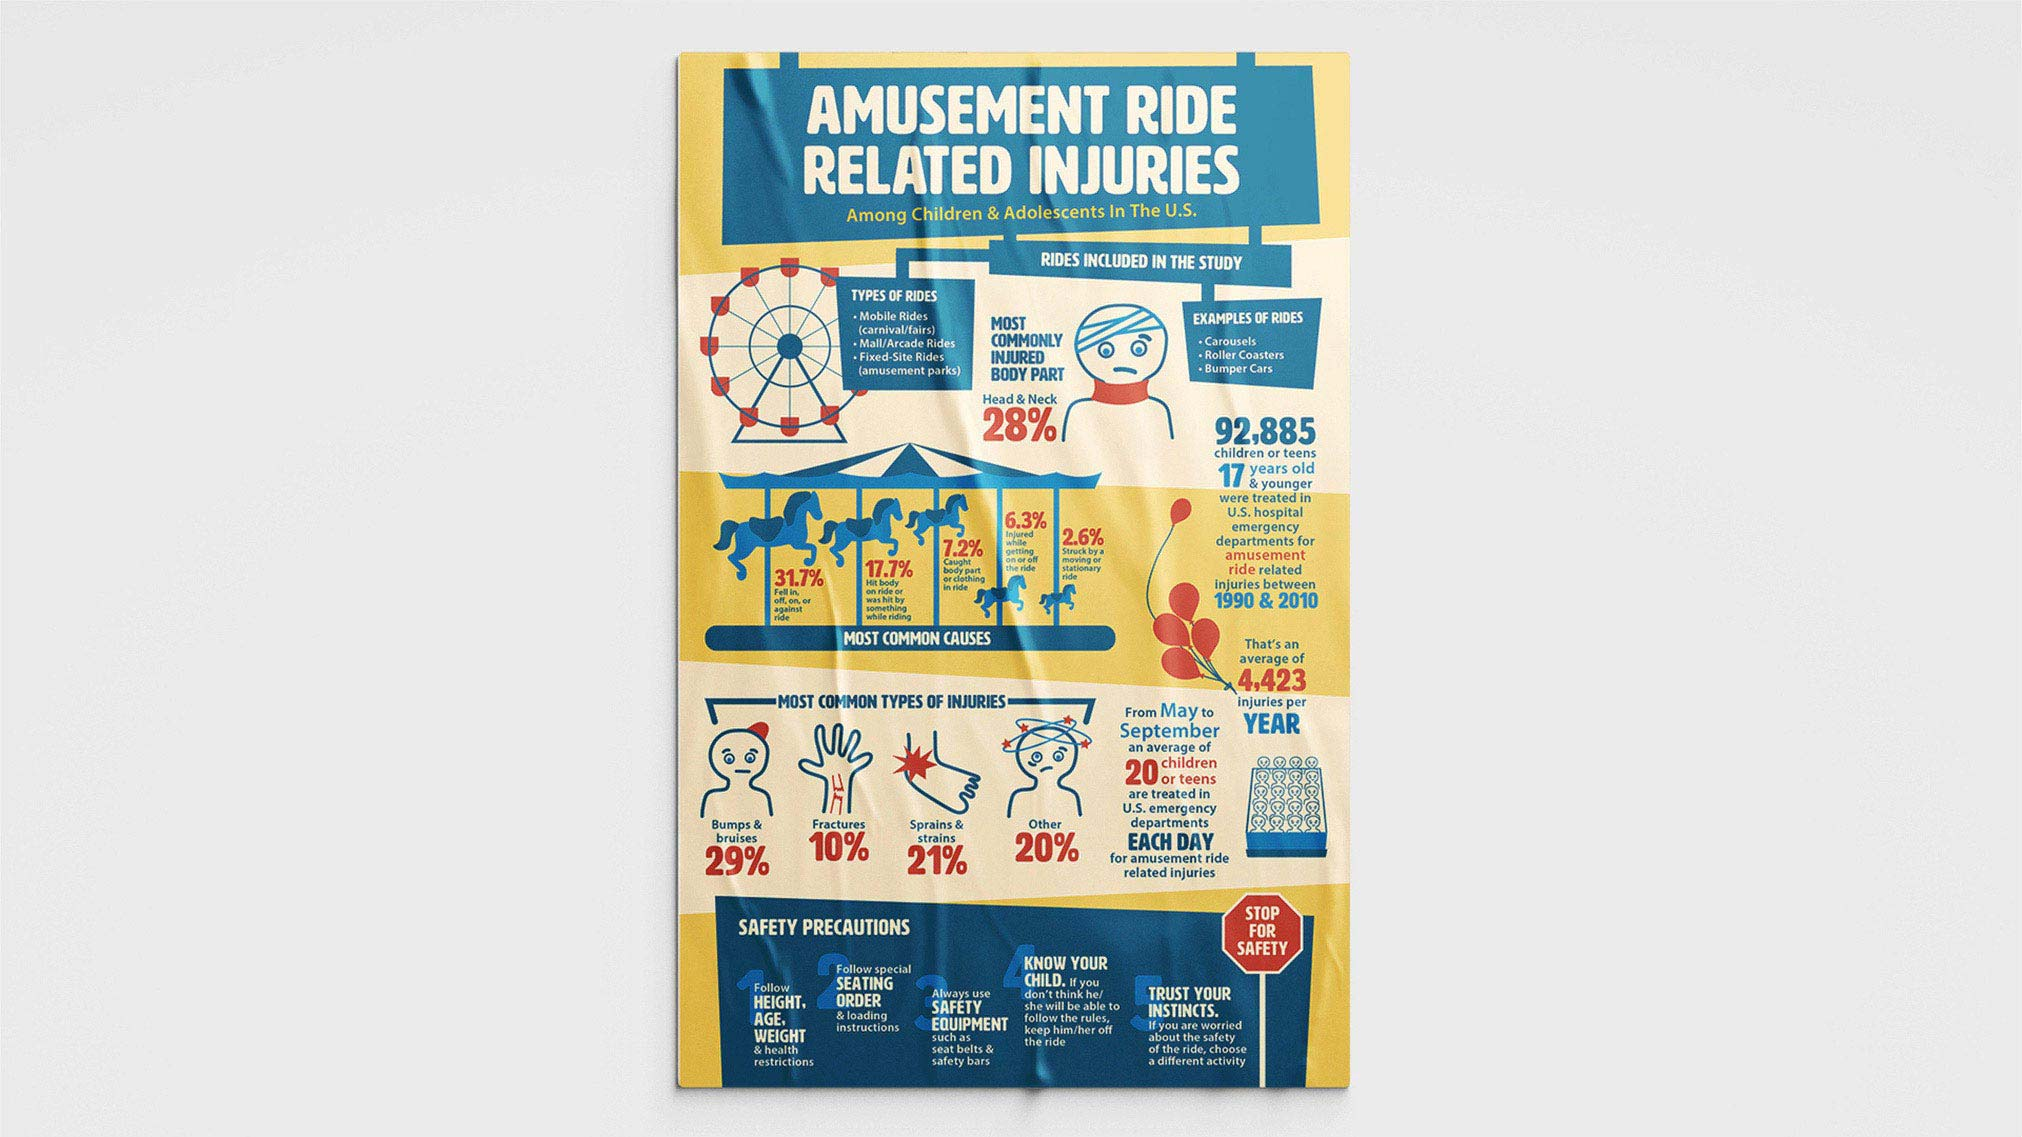 This infographic was designed to visually communicate various information about amusement ride related injuries.